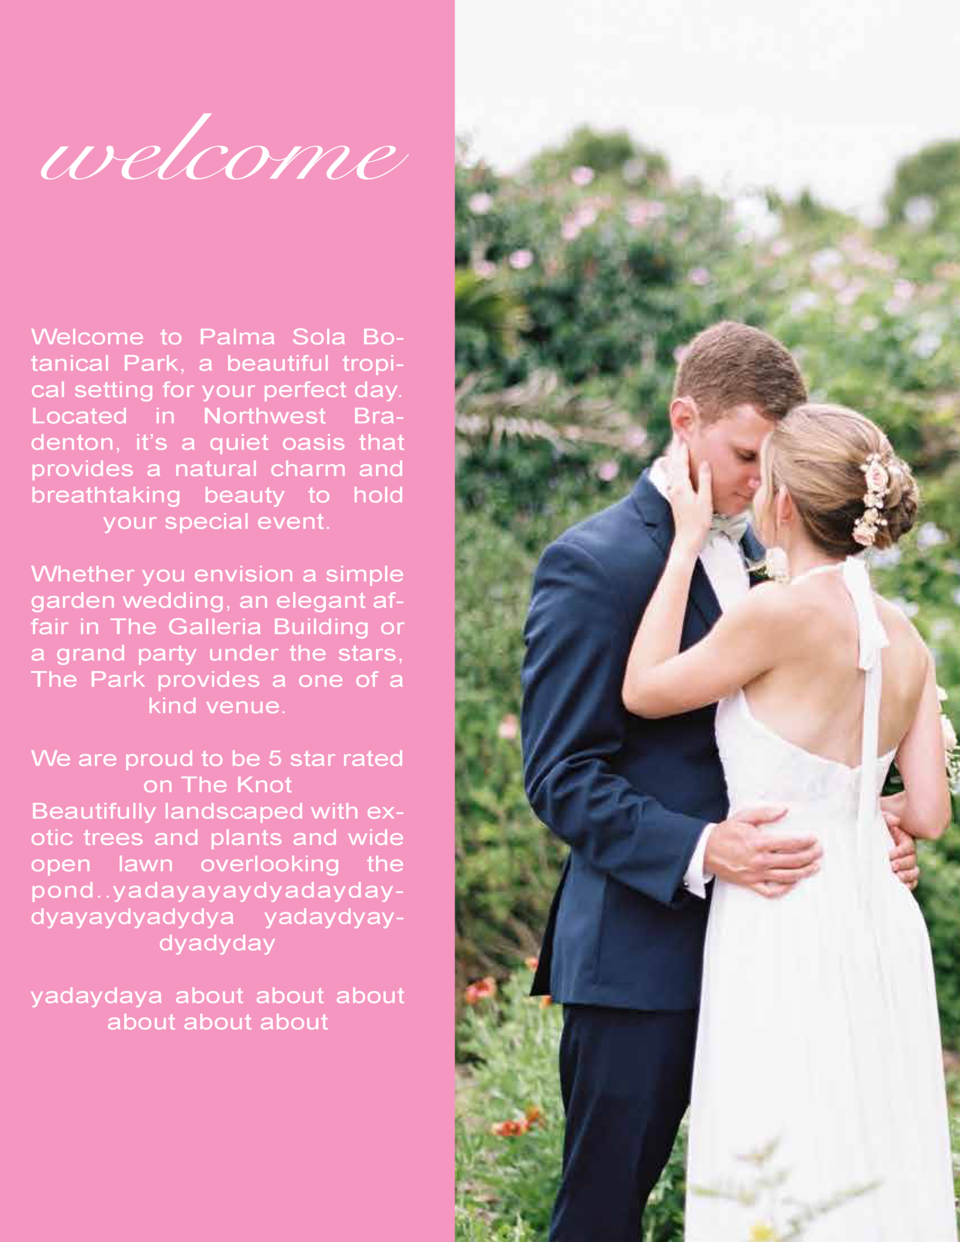 welcome Welcome to Palma Sola Botanical Park, a beautiful tropical setting for your perfect day. Located in Northwest Brad...